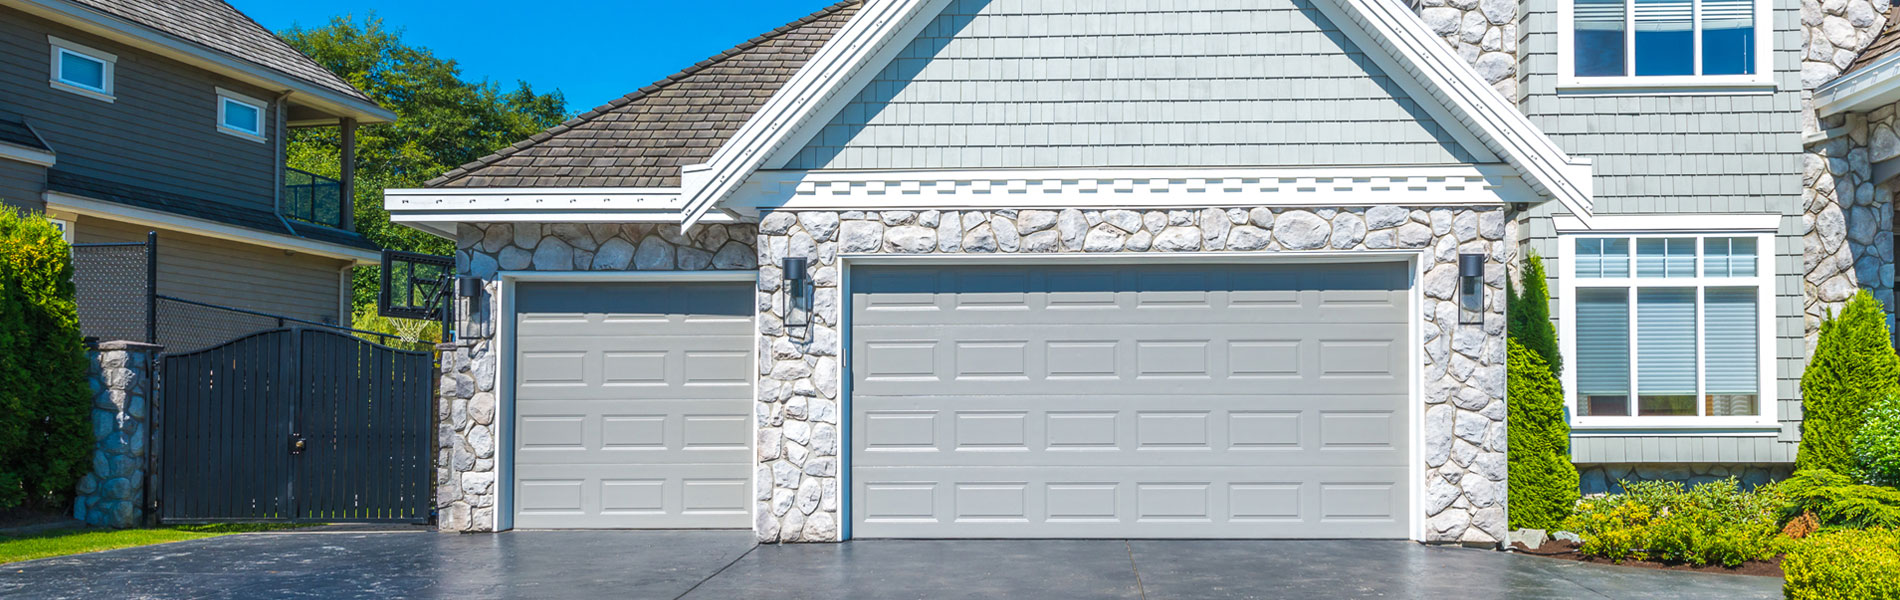 Eagle Garage Door Lake Forest, IL 847-892-9099